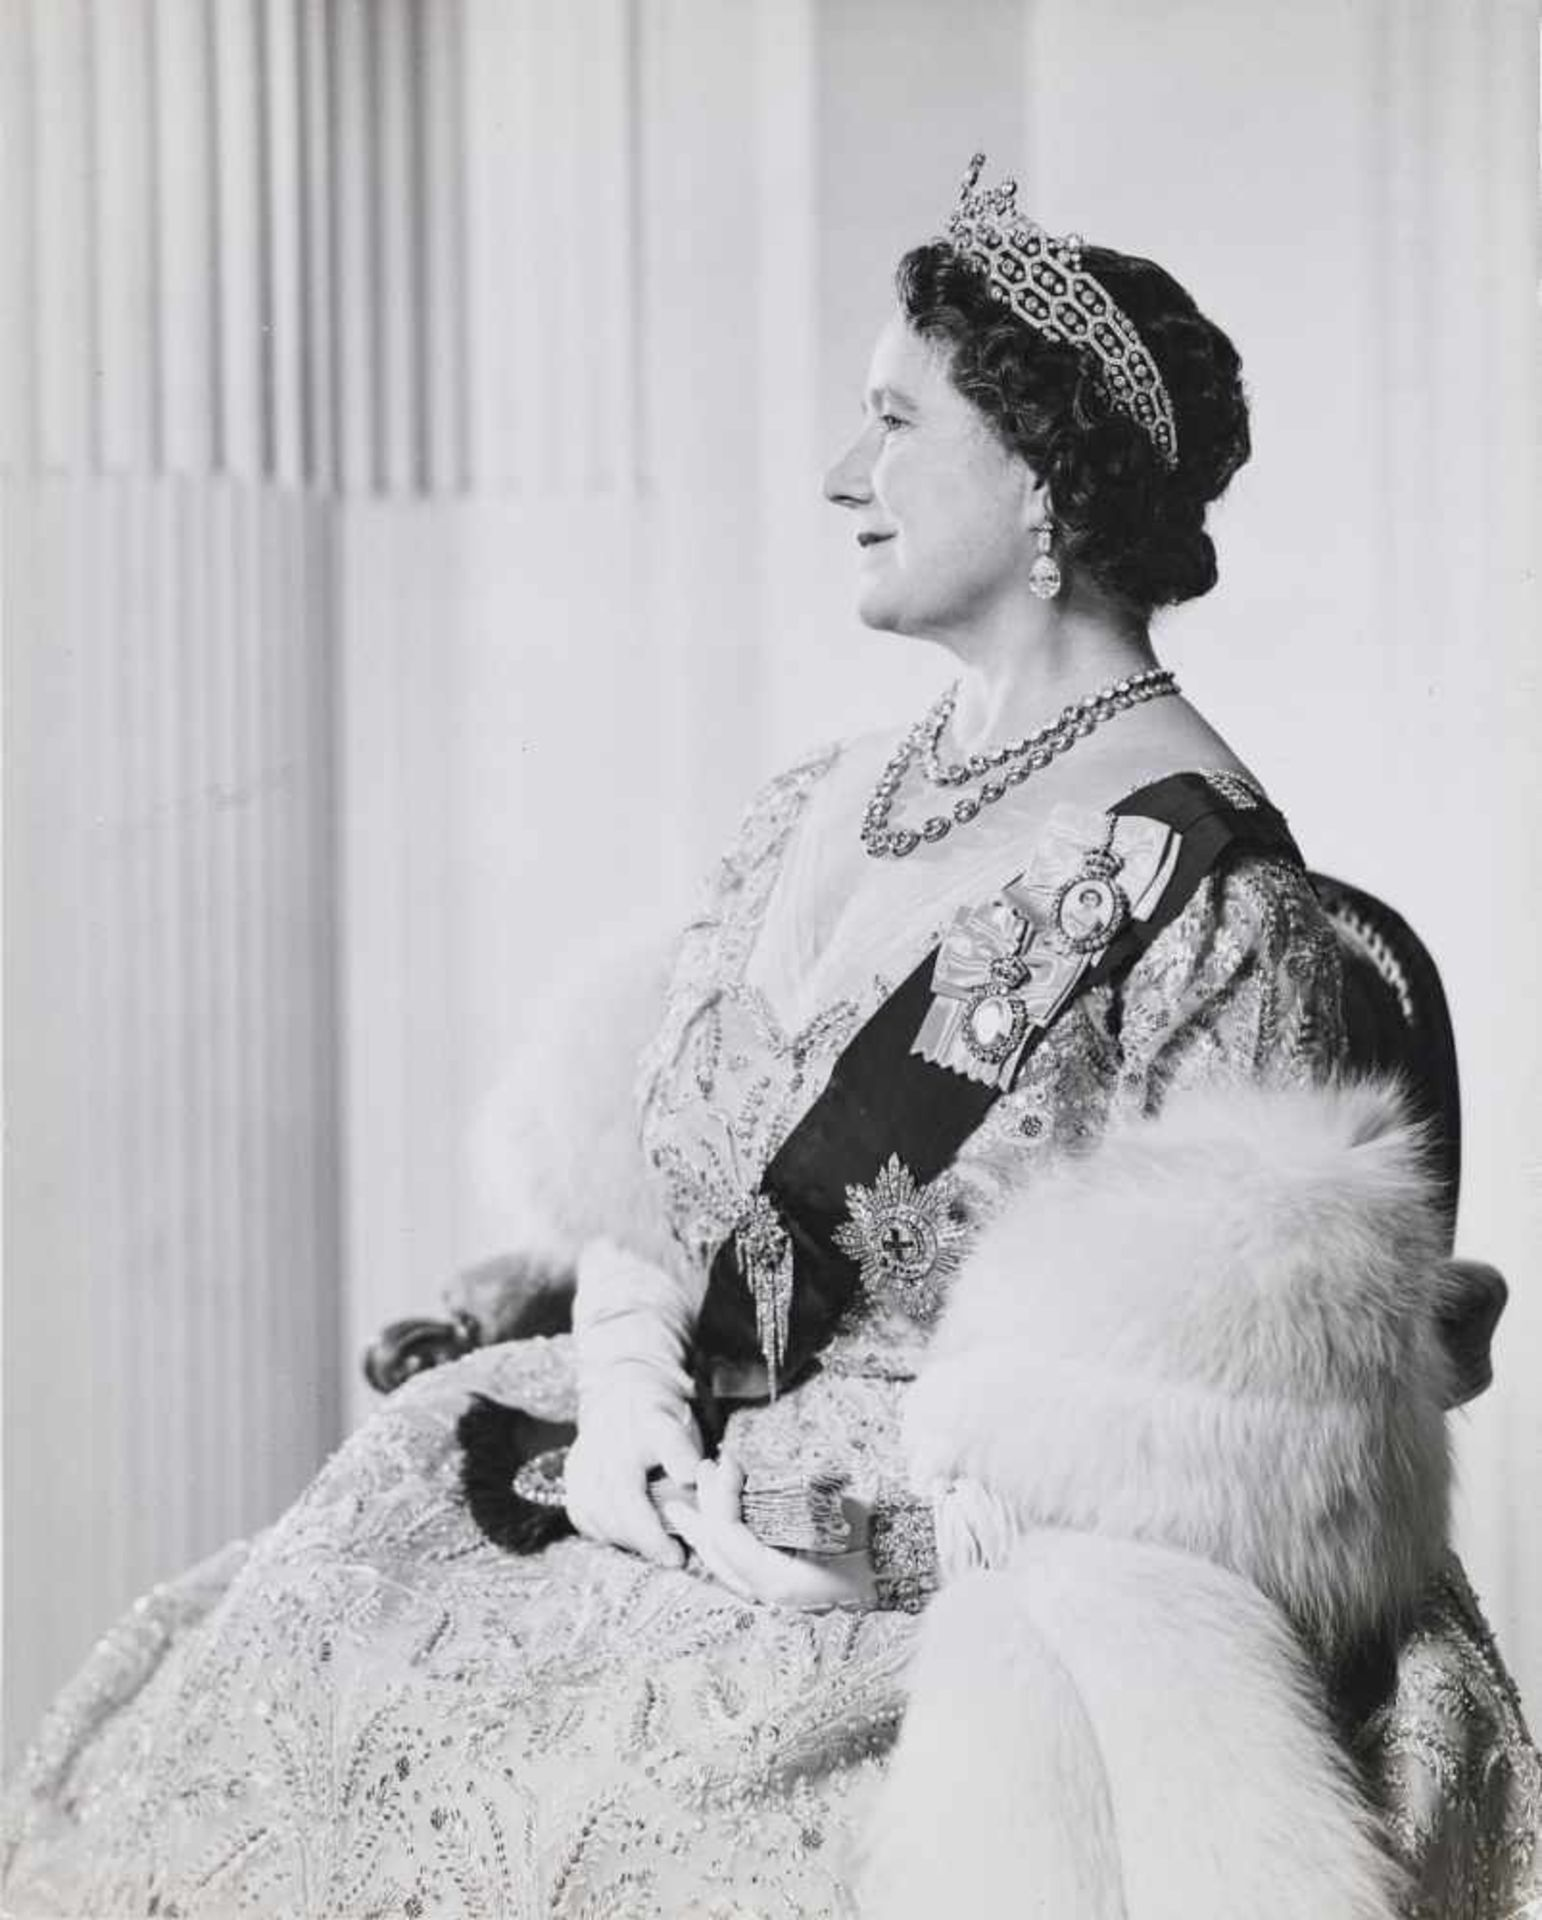 Buckley, Anthony1912 London - 1993 London Portrait of the Queen Mother. 1963 Vintage silver